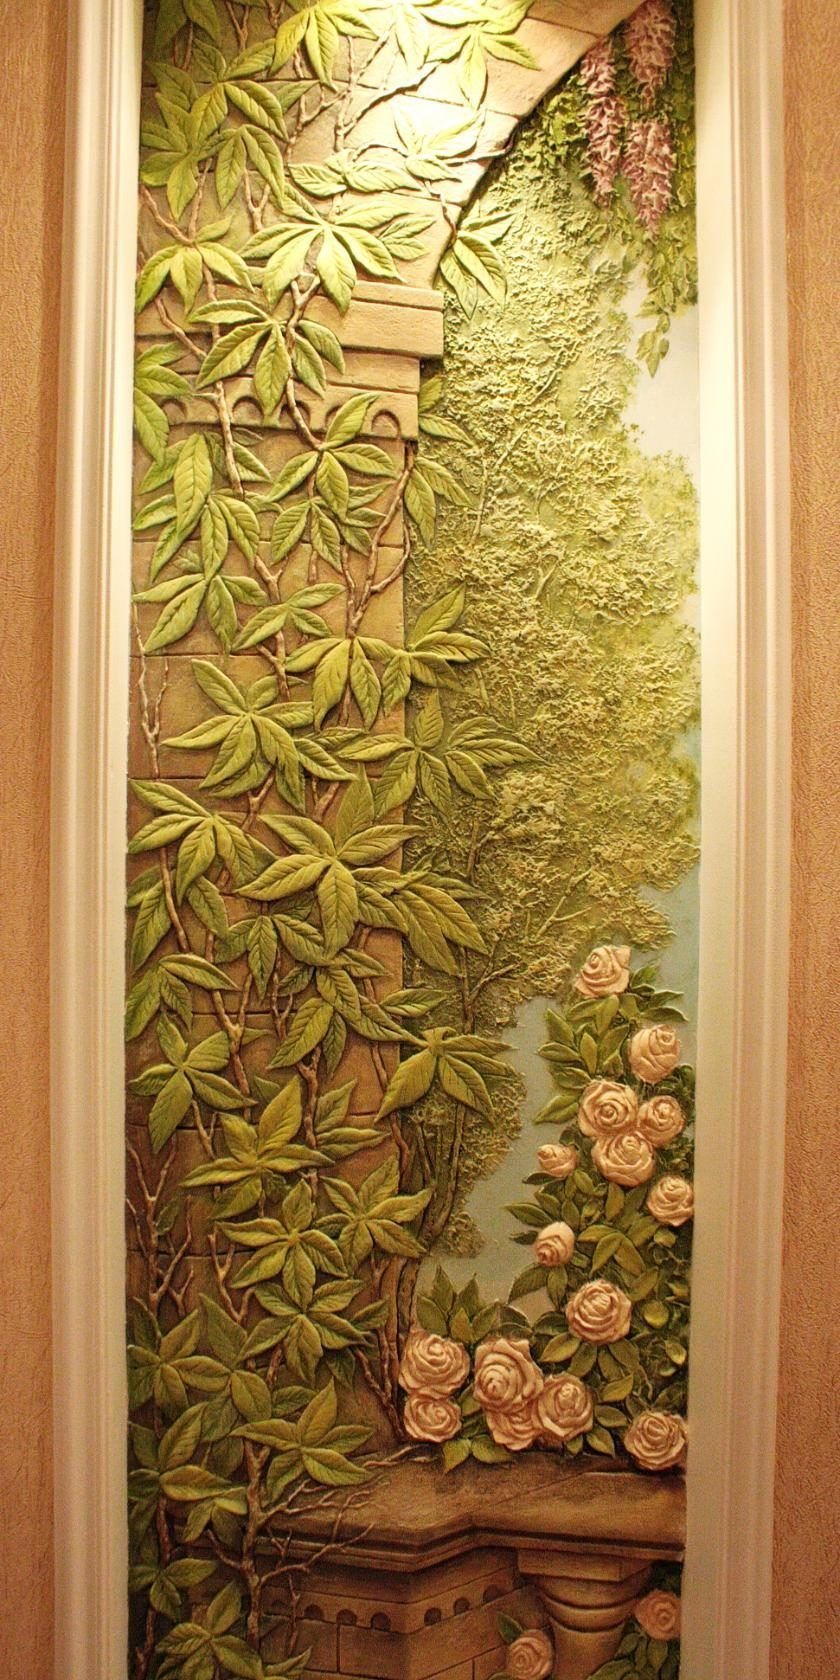 одноклассники | Sculpture mural | Pinterest | Drywall, Walls and ...